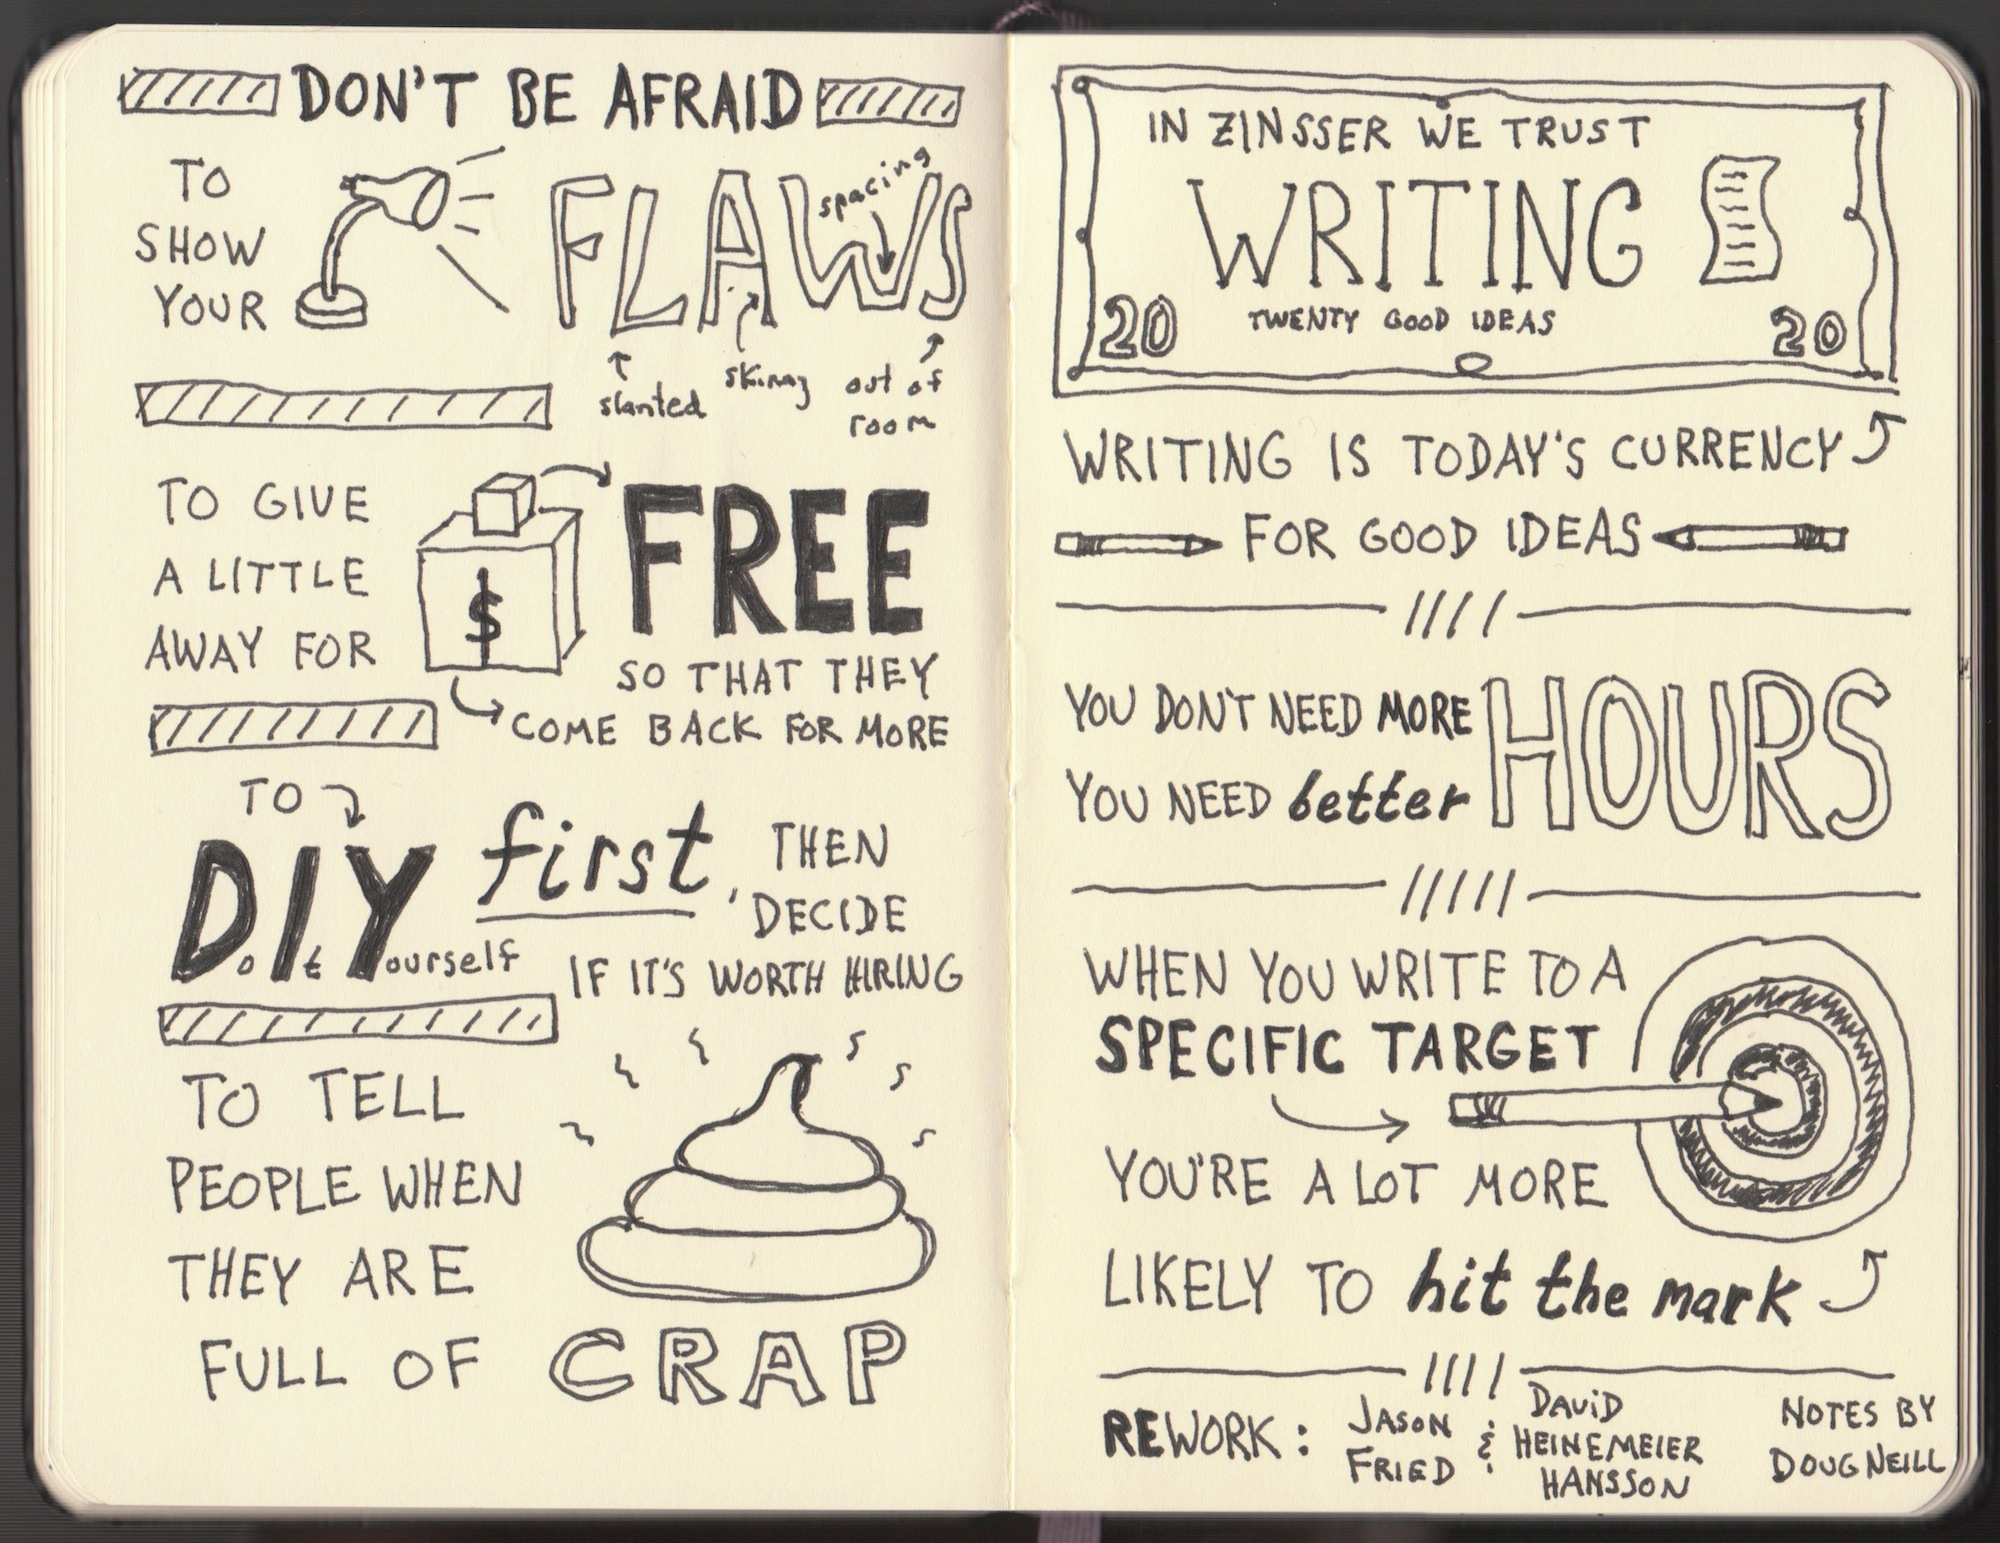 Rework Sketchnotes - Jason Fried, David Heinemeier Hansson - Doug Neill - show your flaws, give a little away for free, do it yourself first, writing is today's currency for good ideas, better hours, write to a specific target